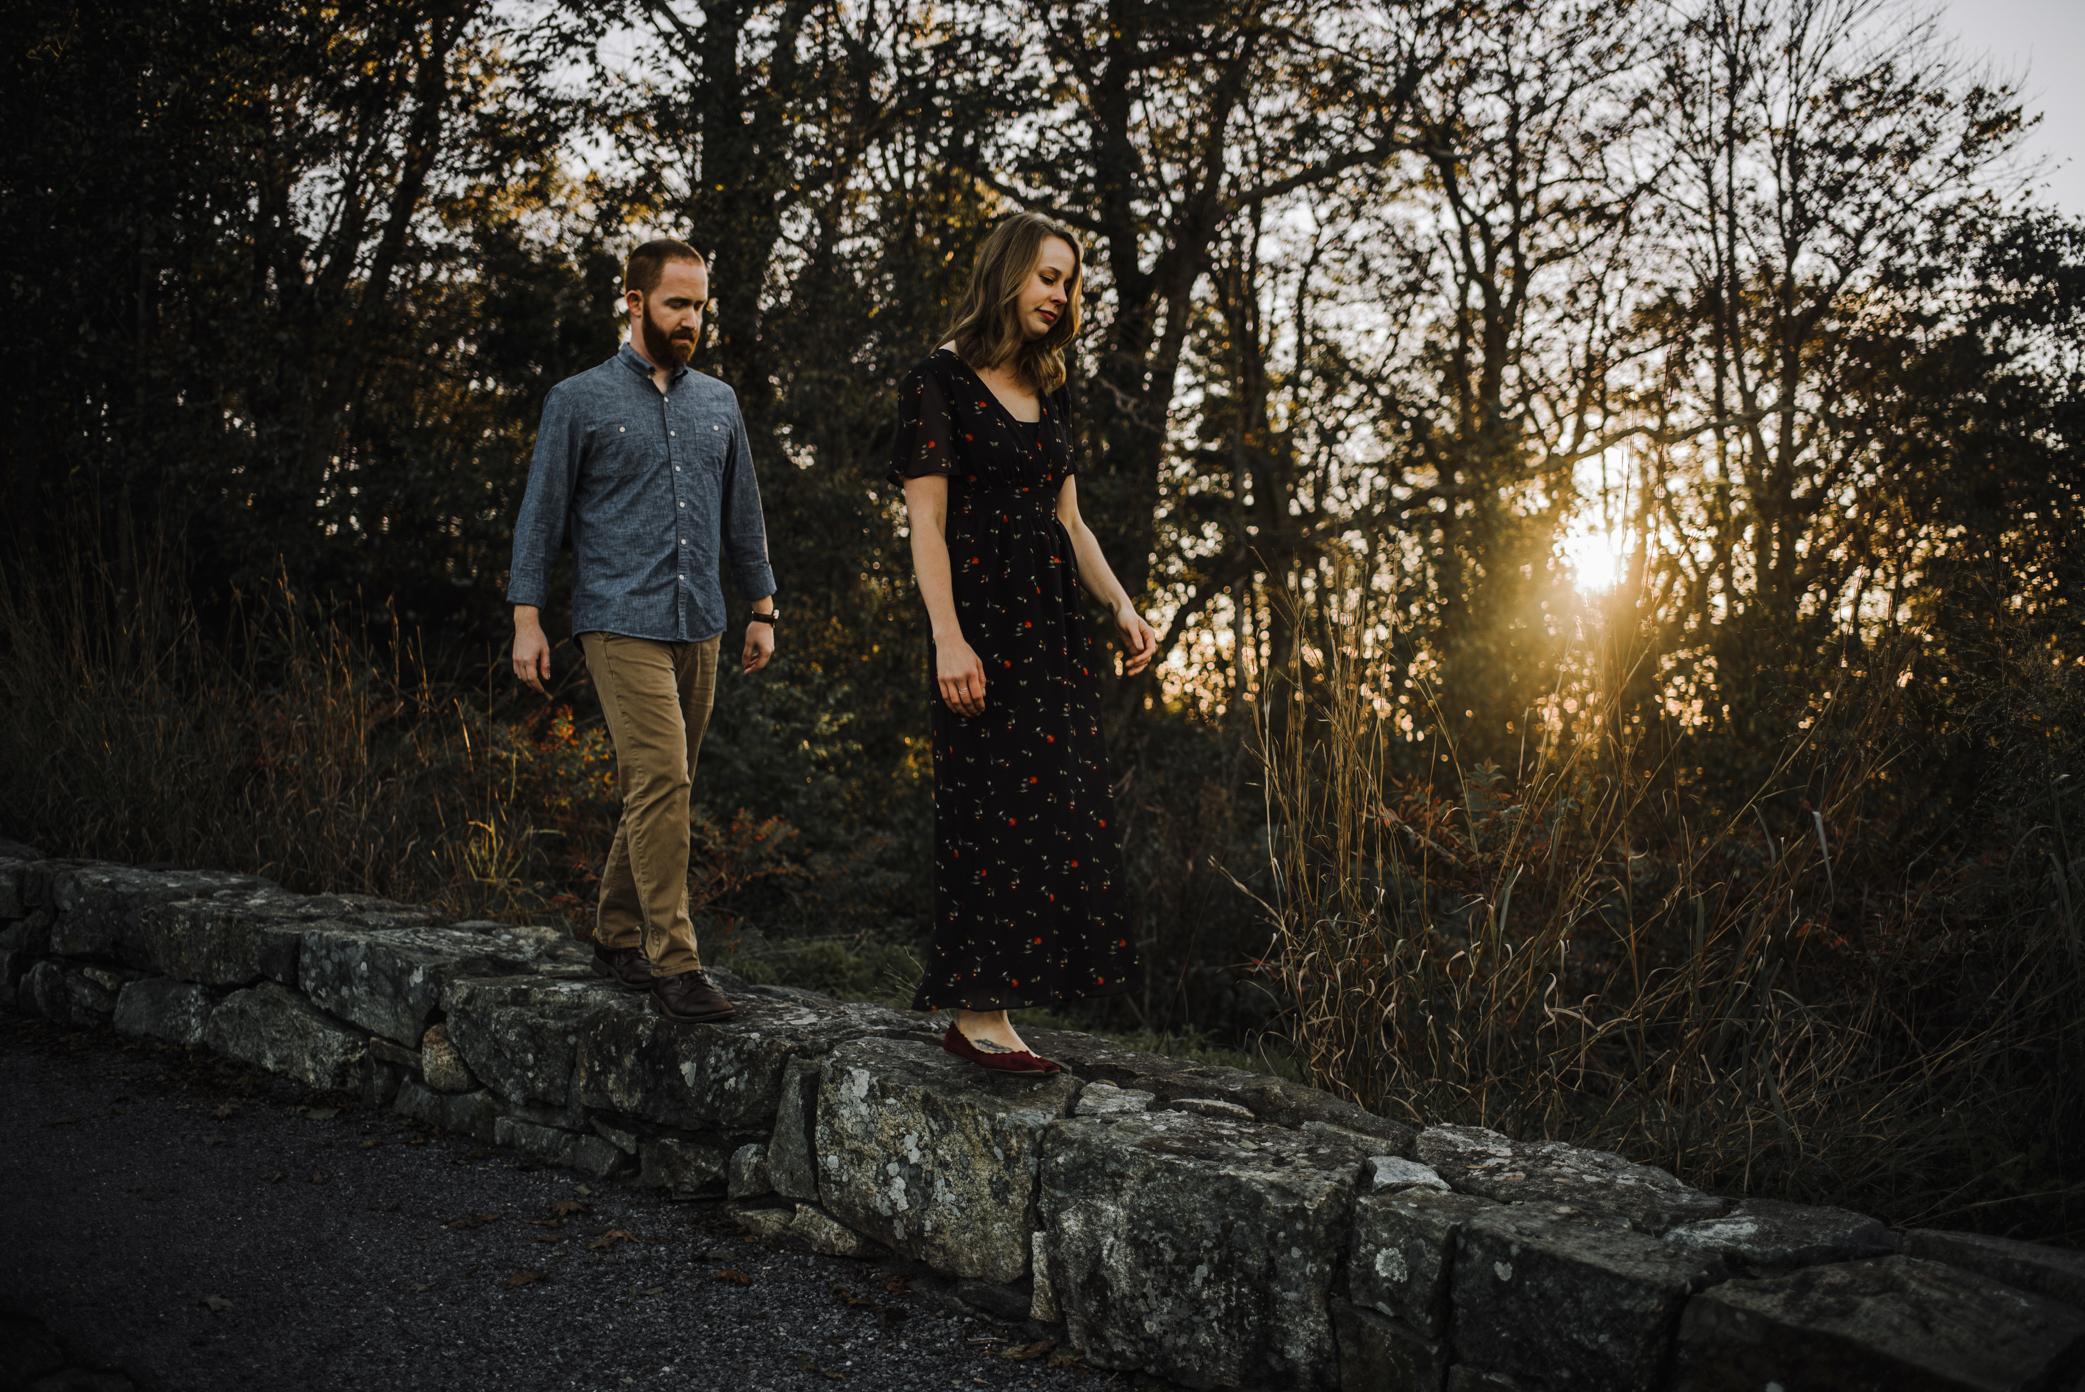 Molly and Zach Engagement Session - Fall Autumn Sunset Couple Adventure Session - Shenandoah National Park - Blue Ridge Parkway Skyline Drive - White Sails Creative_27.JPG